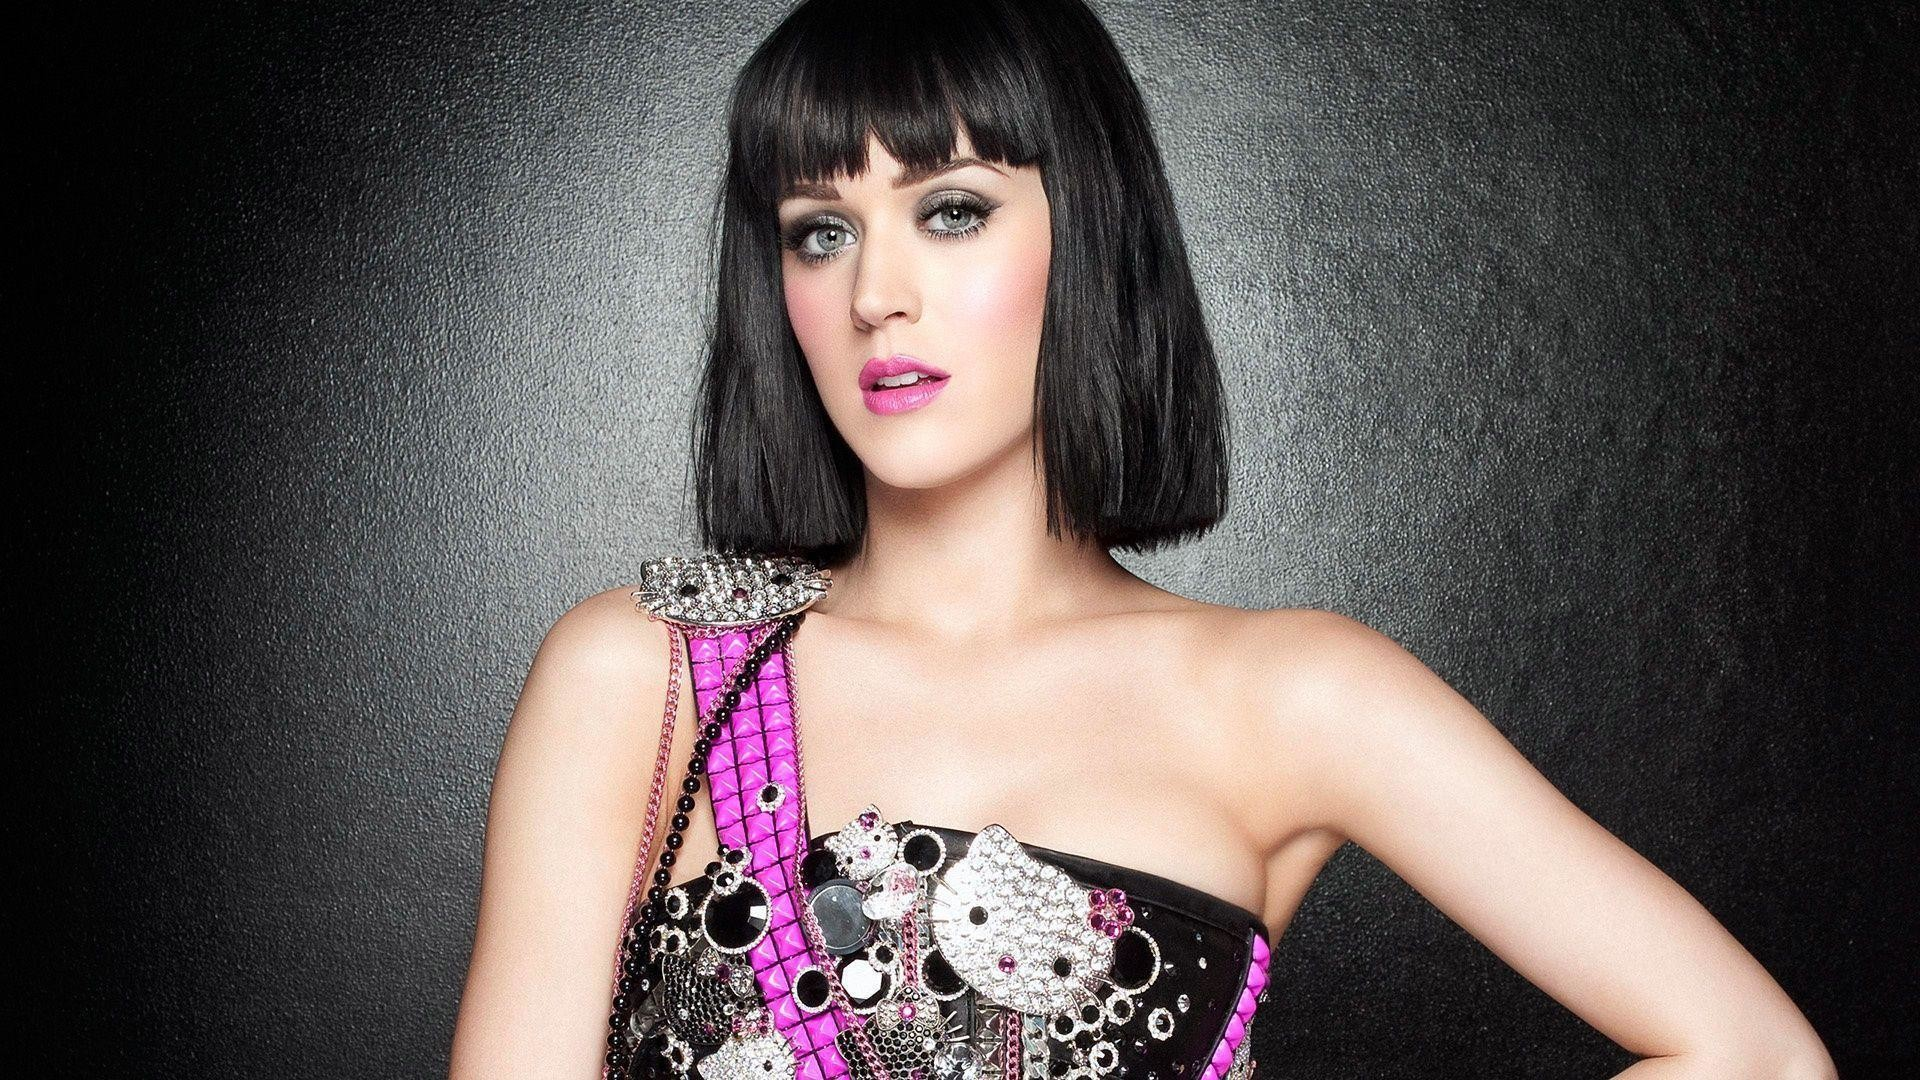 Katy Perry HD Wallpapers And Photos download